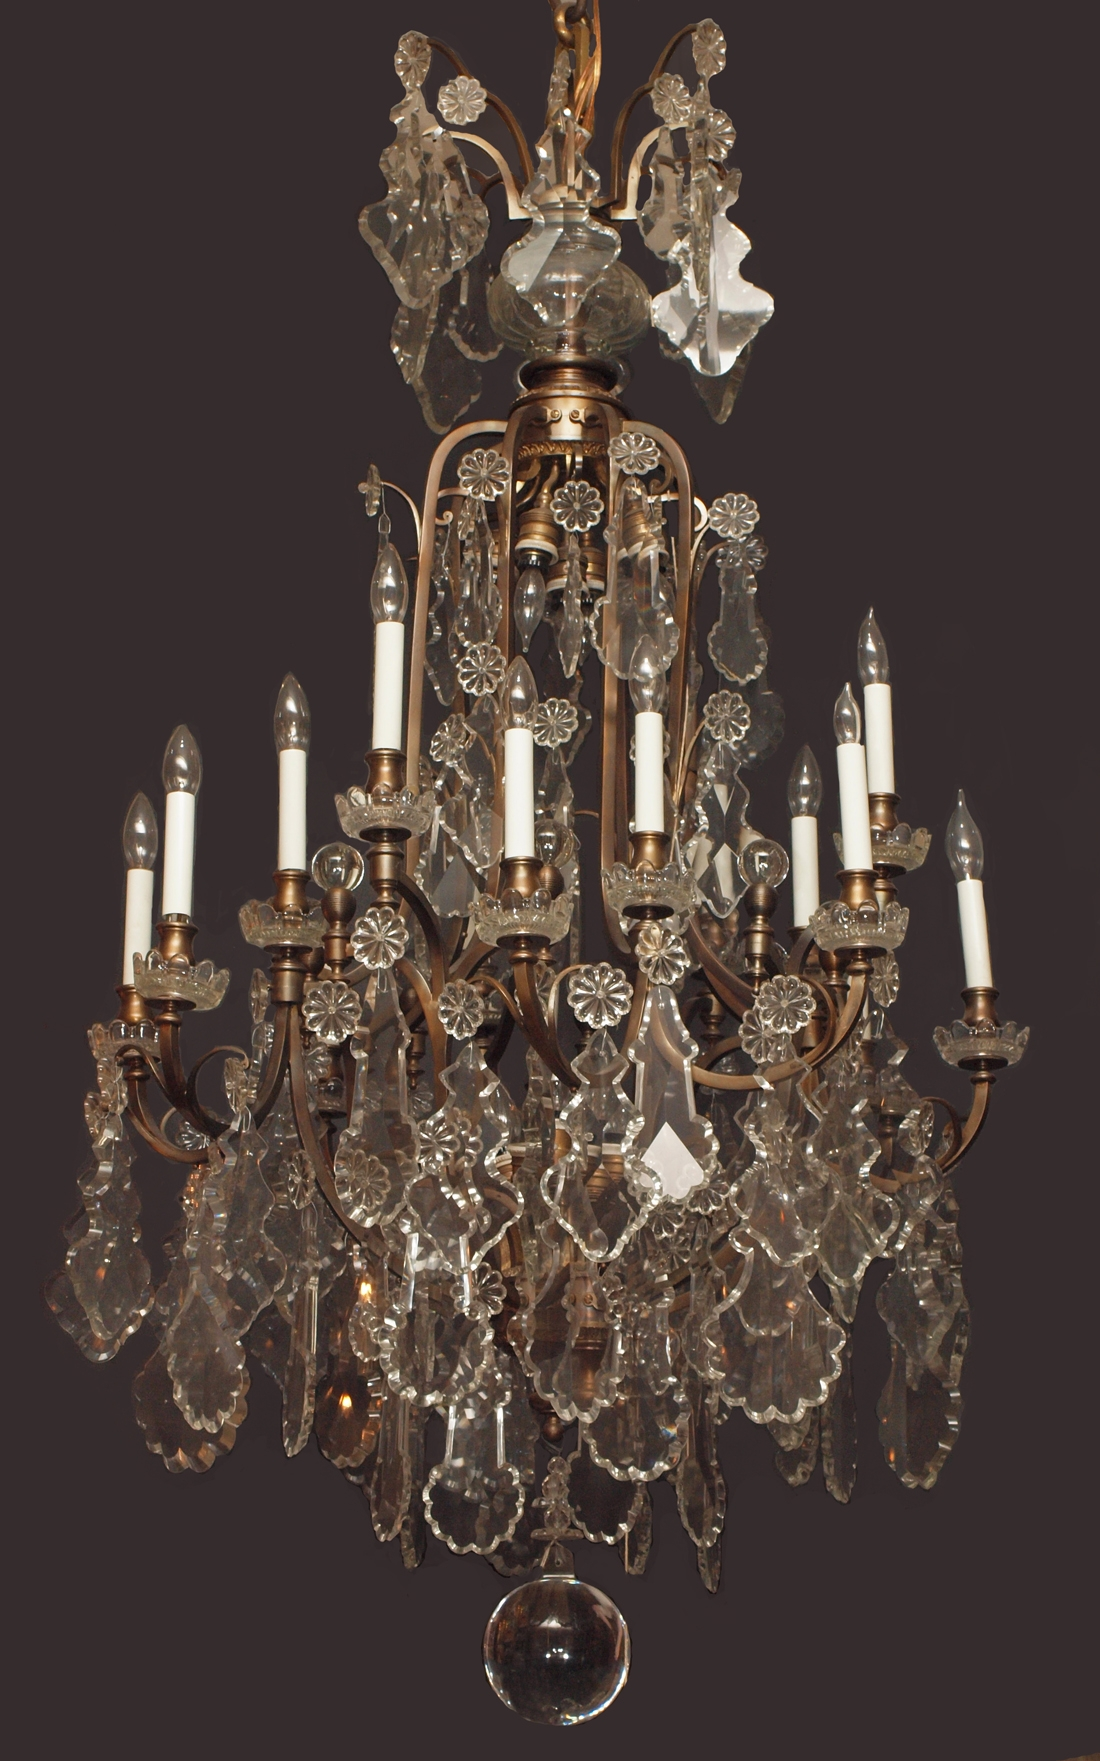 Chandeliers Antiques Chandeliers And French In Vintage French Chandeliers (Image 8 of 15)